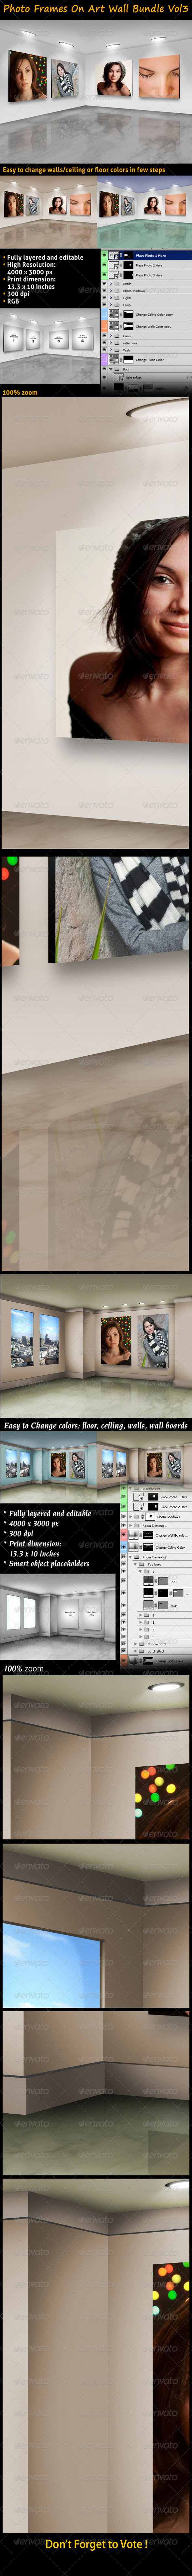 GraphicRiver Photo Frames On Art Wall Bundle Vol3 3549557